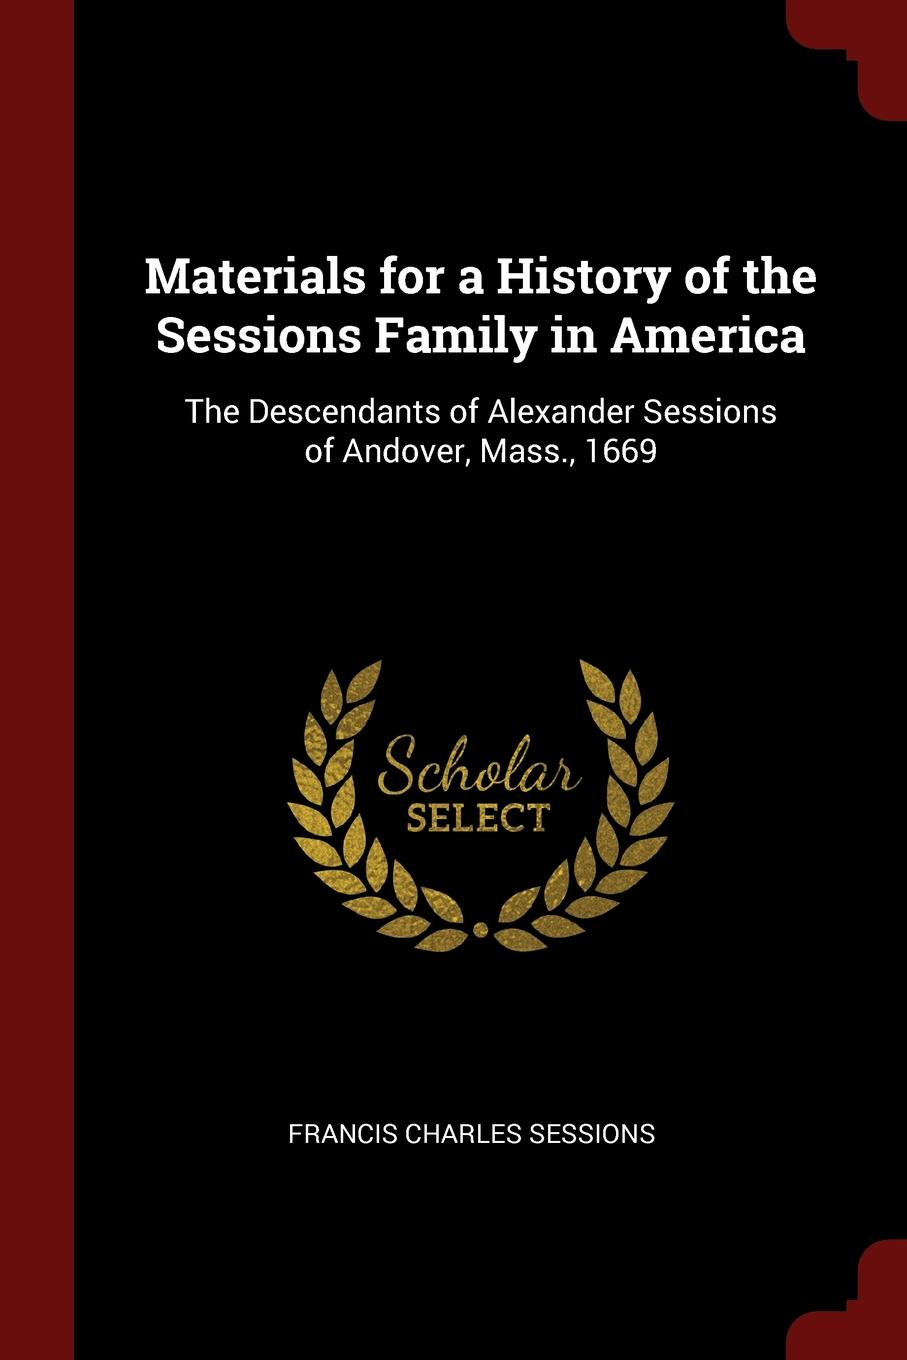 Francis Charles Sessions Materials for a History of the Family in America. The Descendants Alexander Andover, Mass., 1669